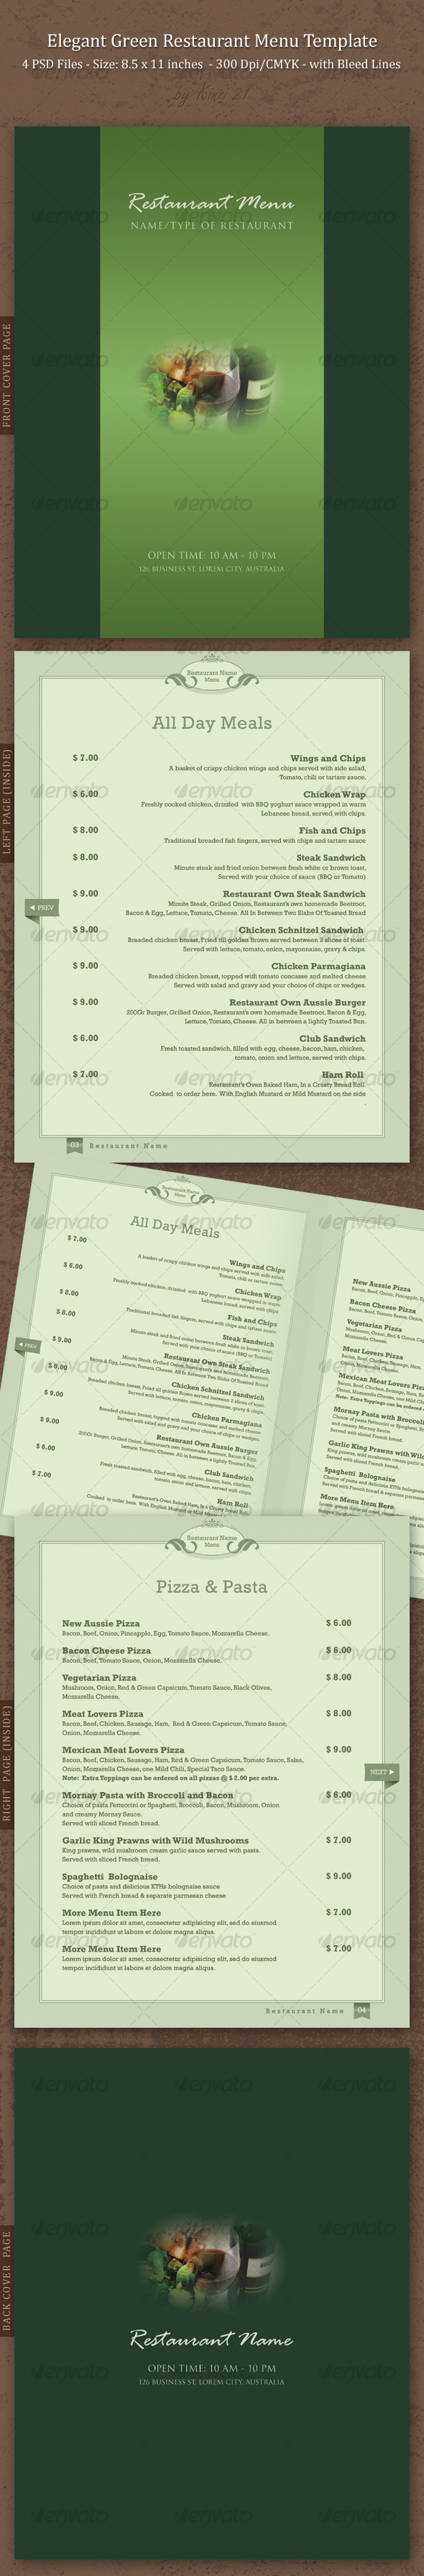 Elegant Green Restaurant Menu Template